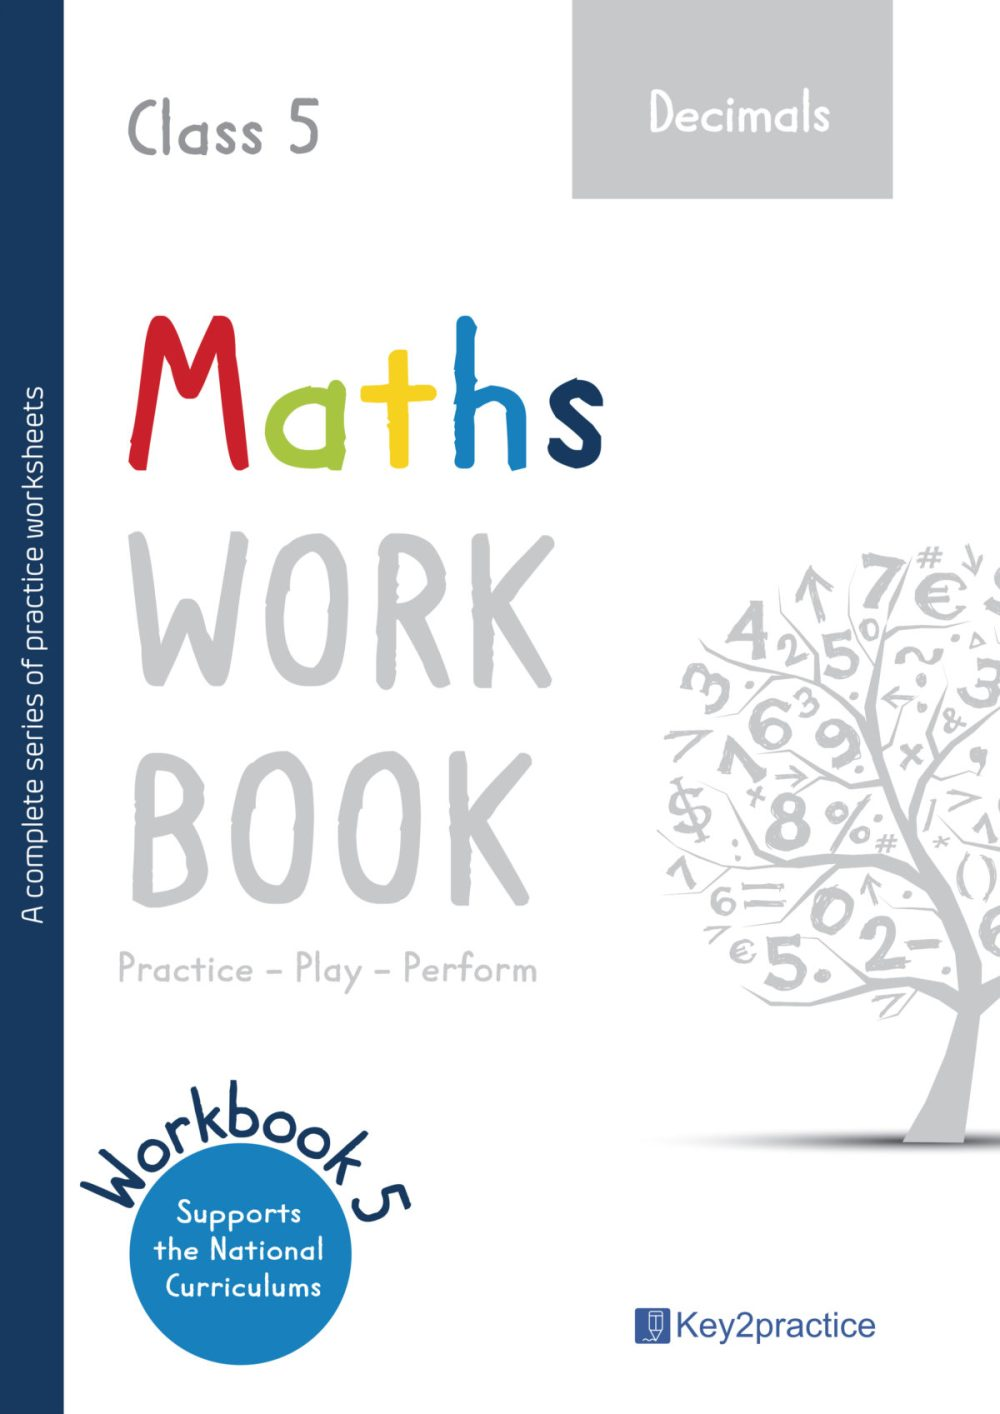 medium resolution of Class 5 Maths Worksheets I Chapter Decimals - key2practice Workbooks